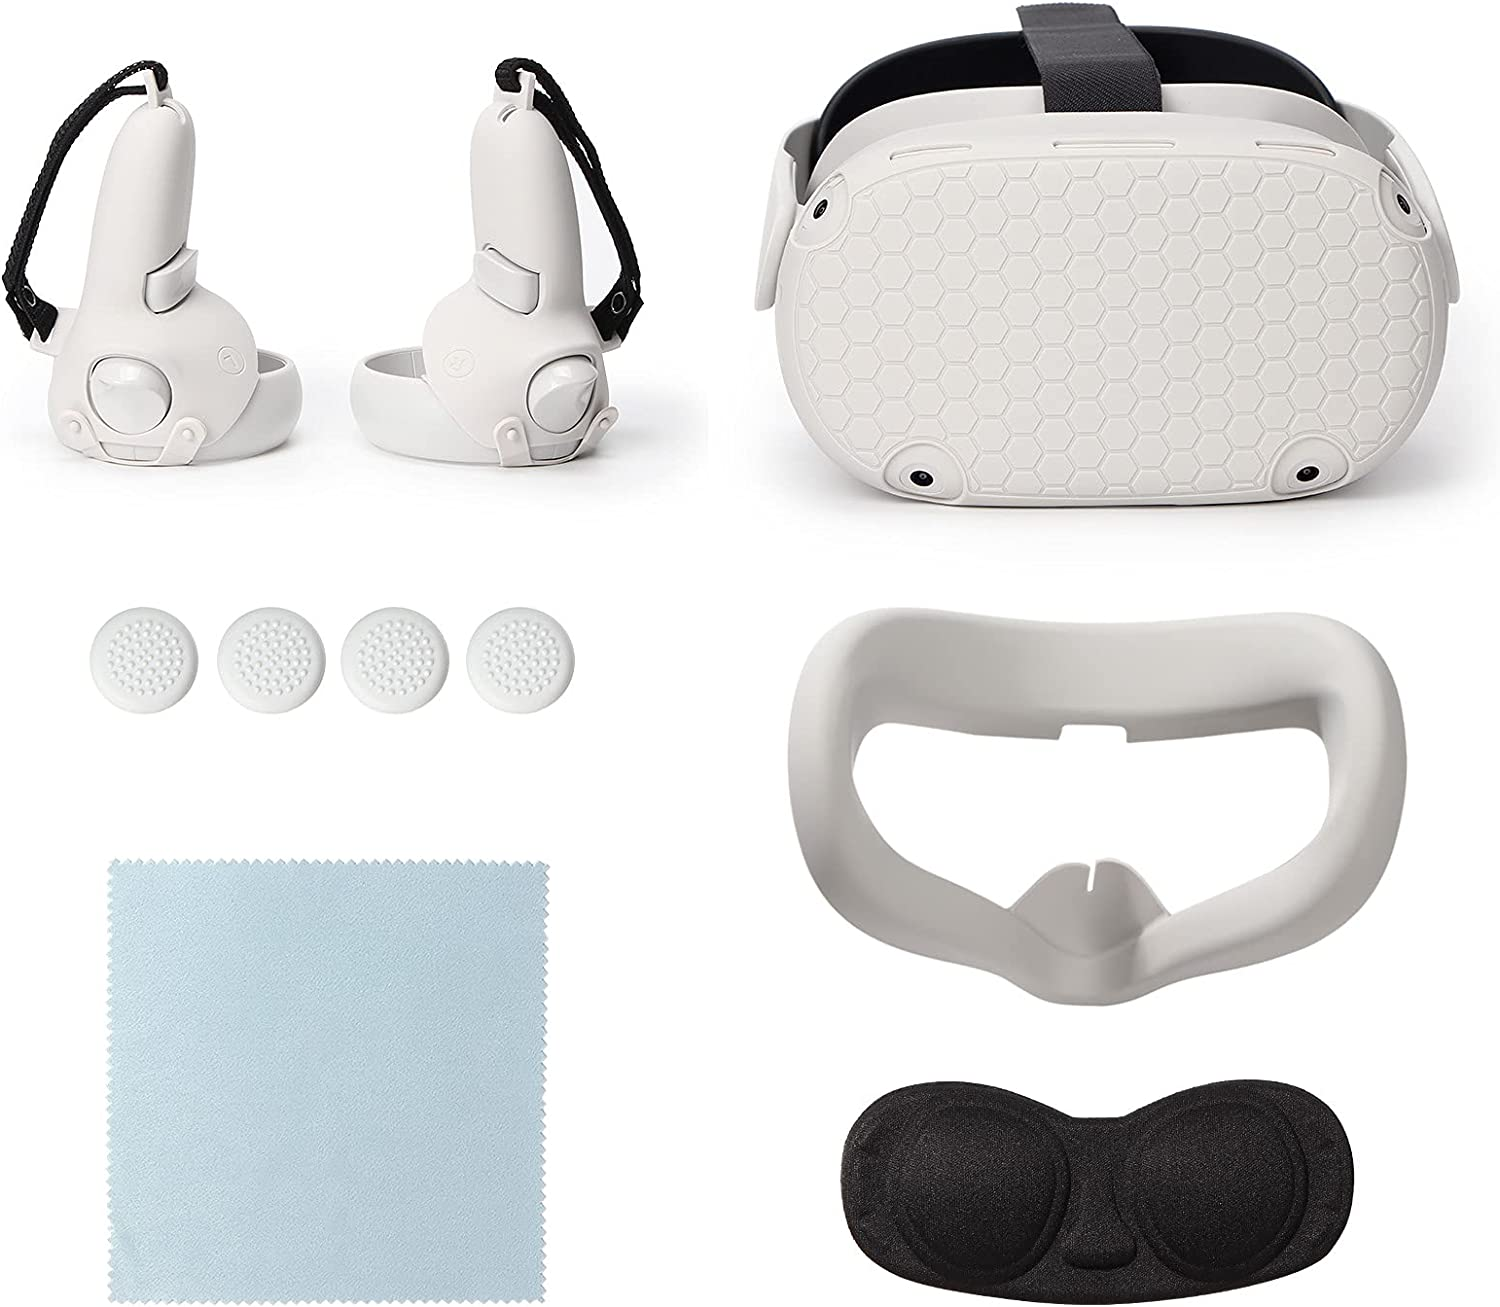 6 in 1 VR Headset and Controller Accessories Combo Set for Oculus Quest 2, VR Shell Protector Cover+Silicone Face Cover+Lens Protector Cover+Controller Protector Cover+Thumb Button Cap+Cleaning Cloth